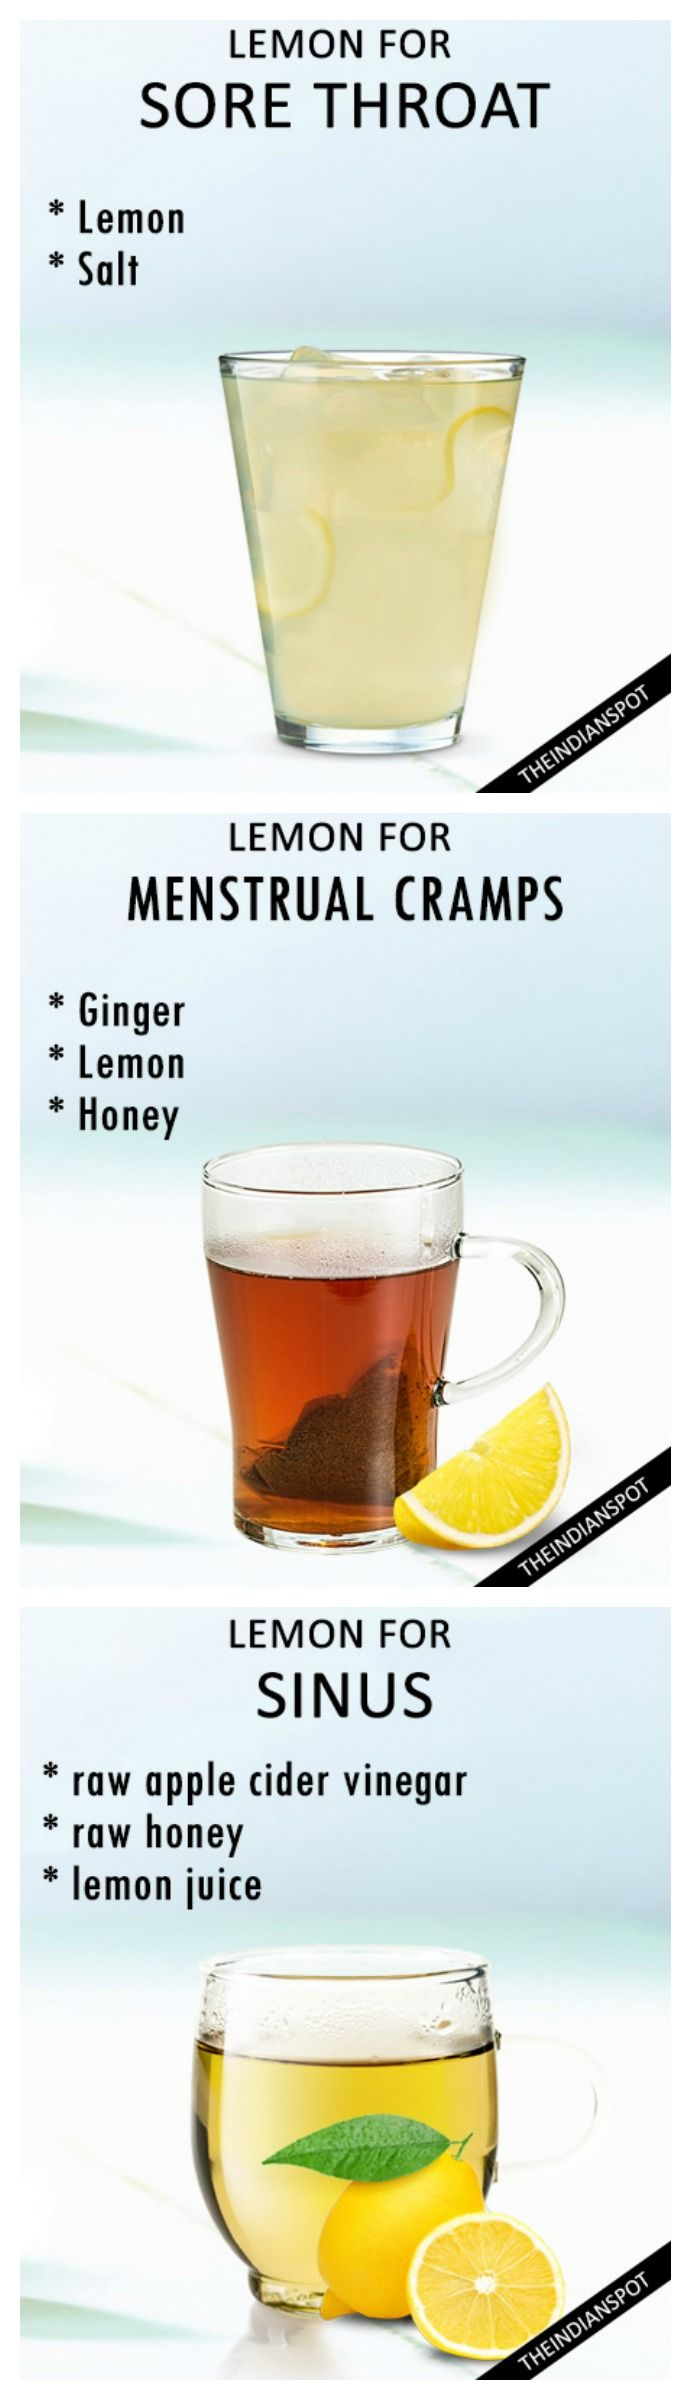 Home remedies using lemon - menstrual cramps, sore throat, and more...